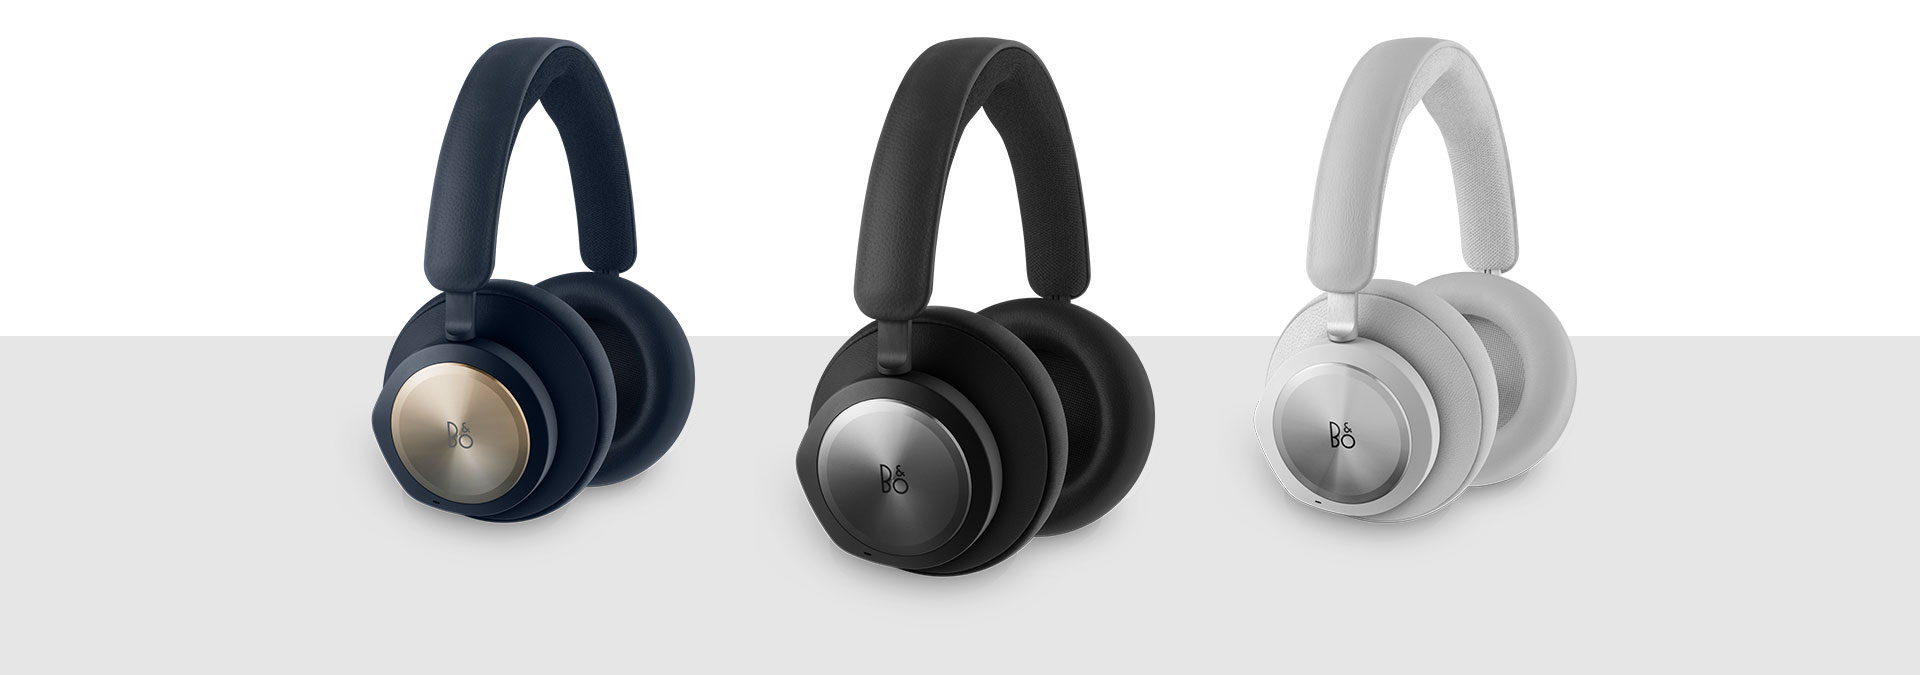 Bang and Olufsen black, grey, and navy headset